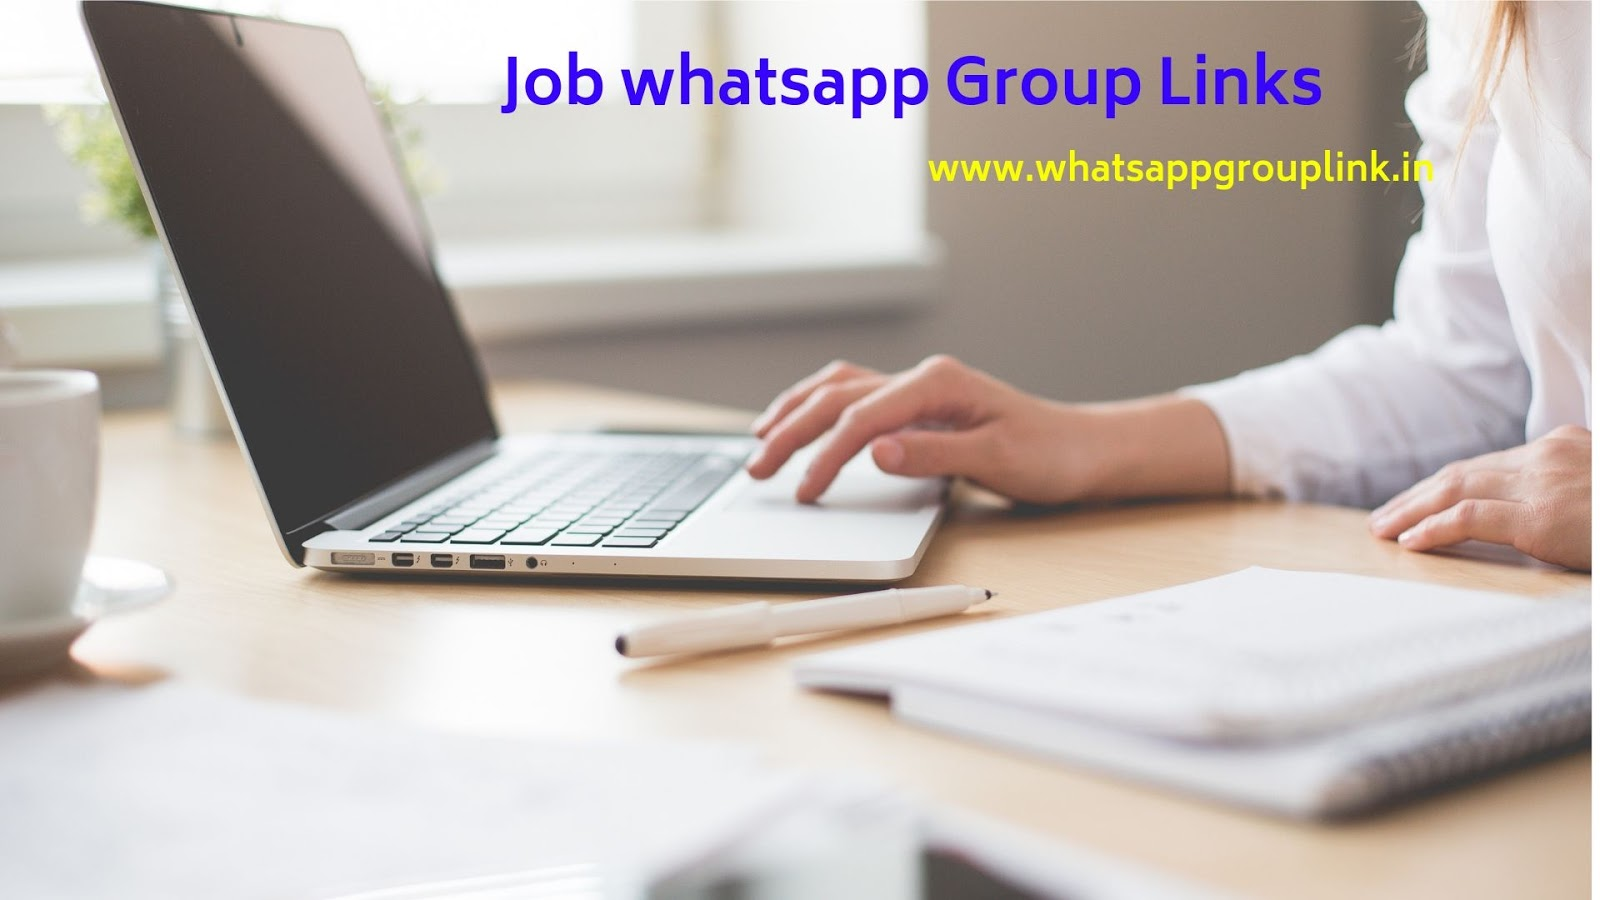 Whatsapp Group Link: Job Whatsapp Group Links